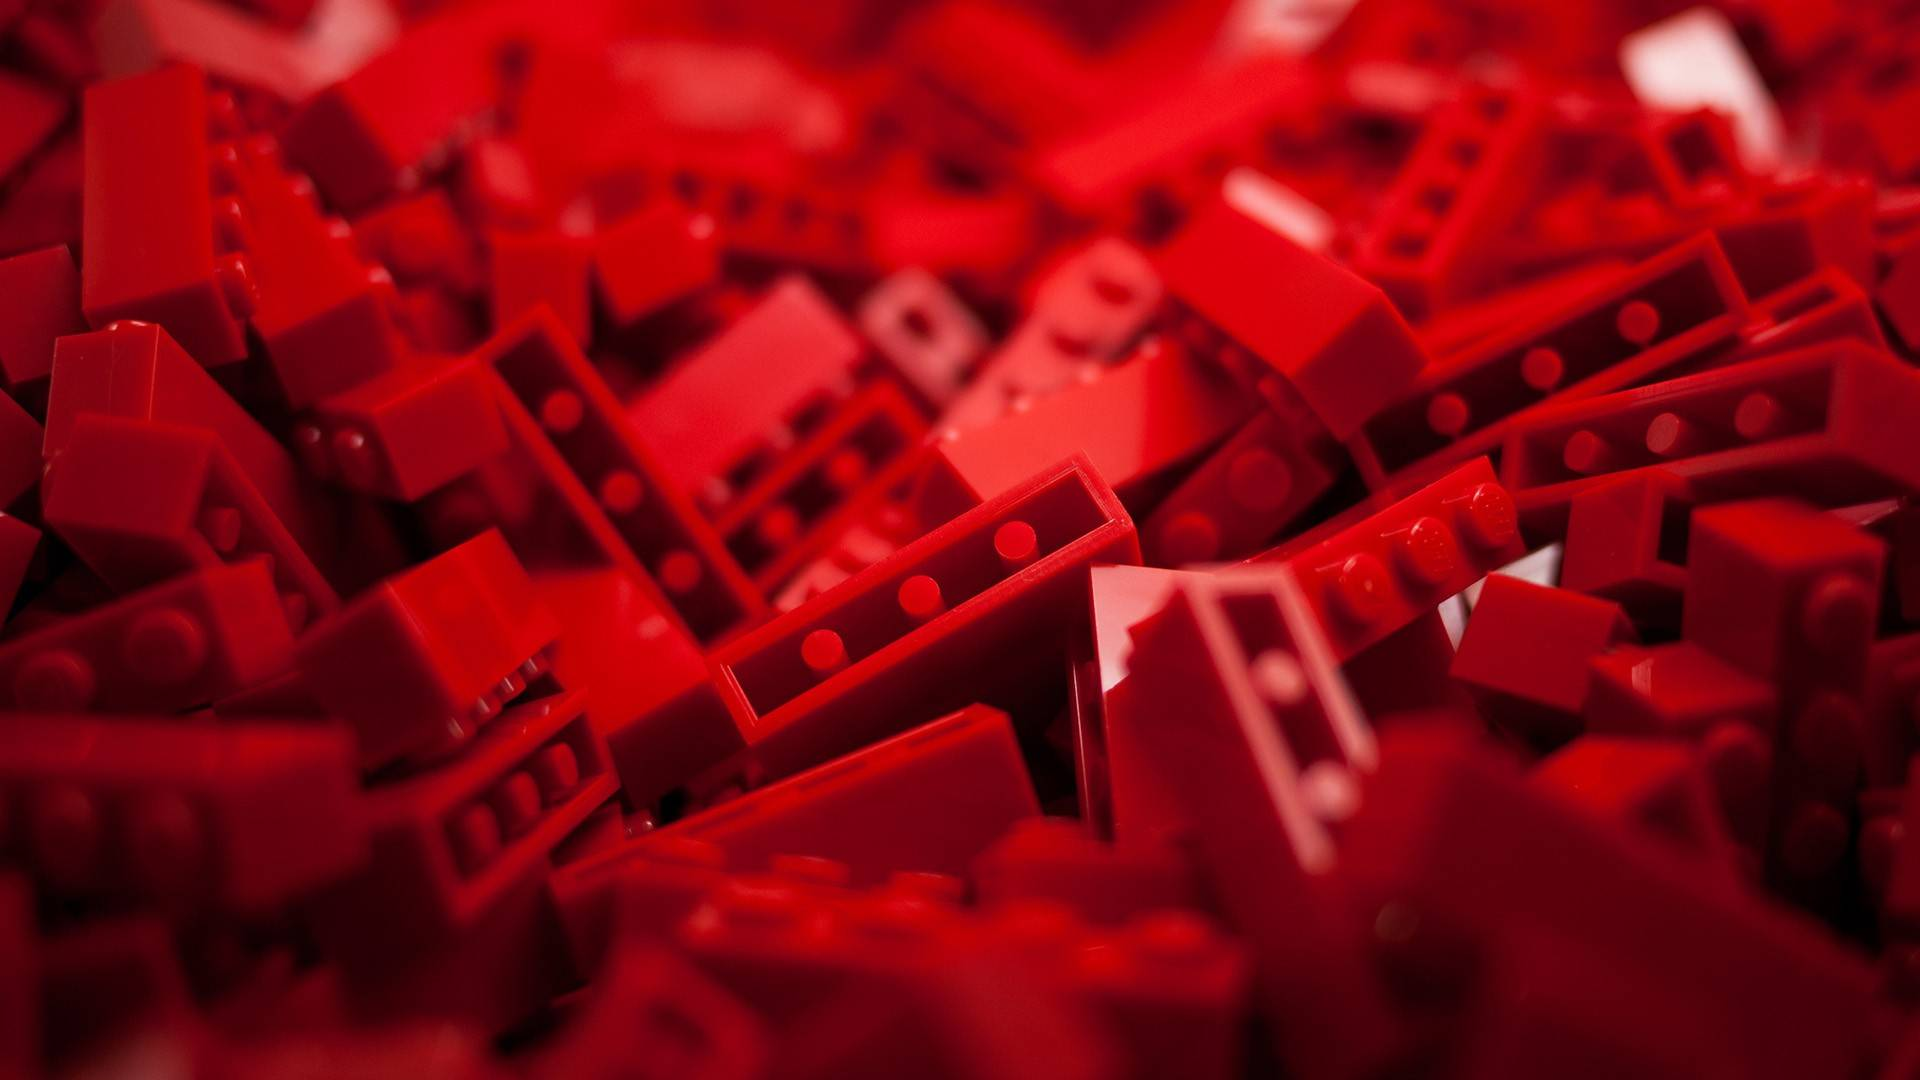 Download Red Lego Wallpaper Gallery